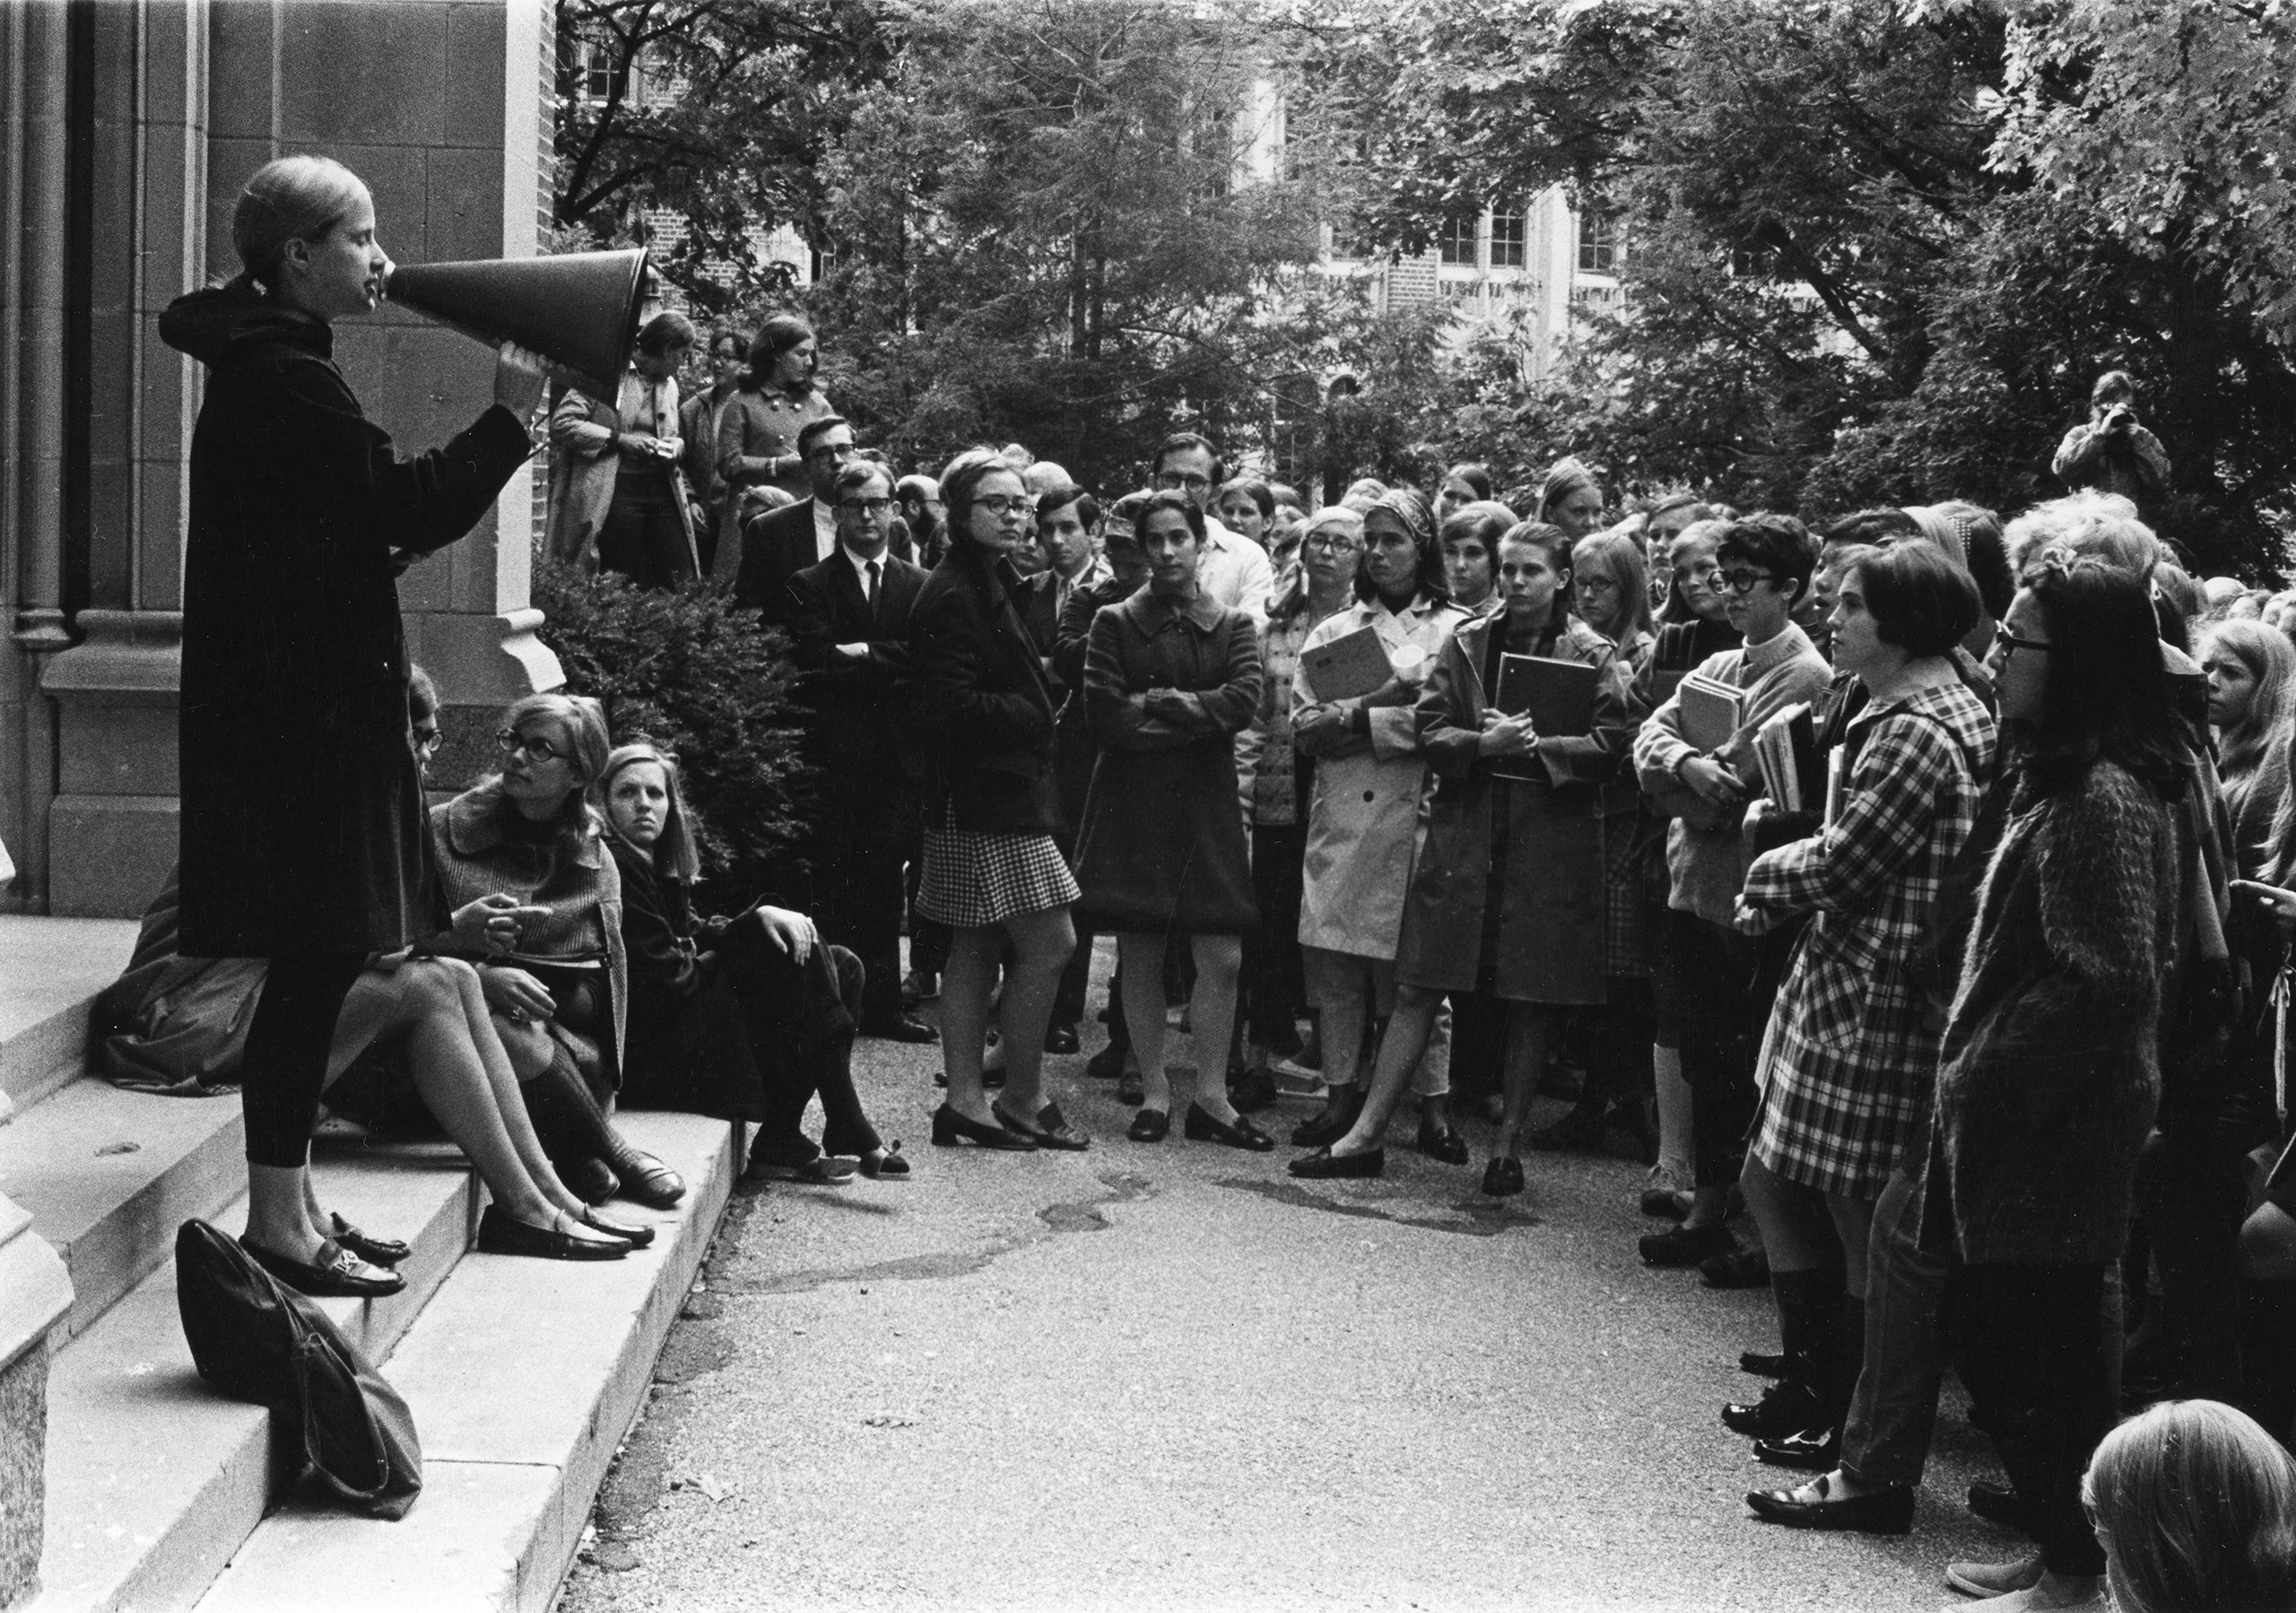 Hillary (center) attends a student rally at Wellesley College, October 8, 1968.